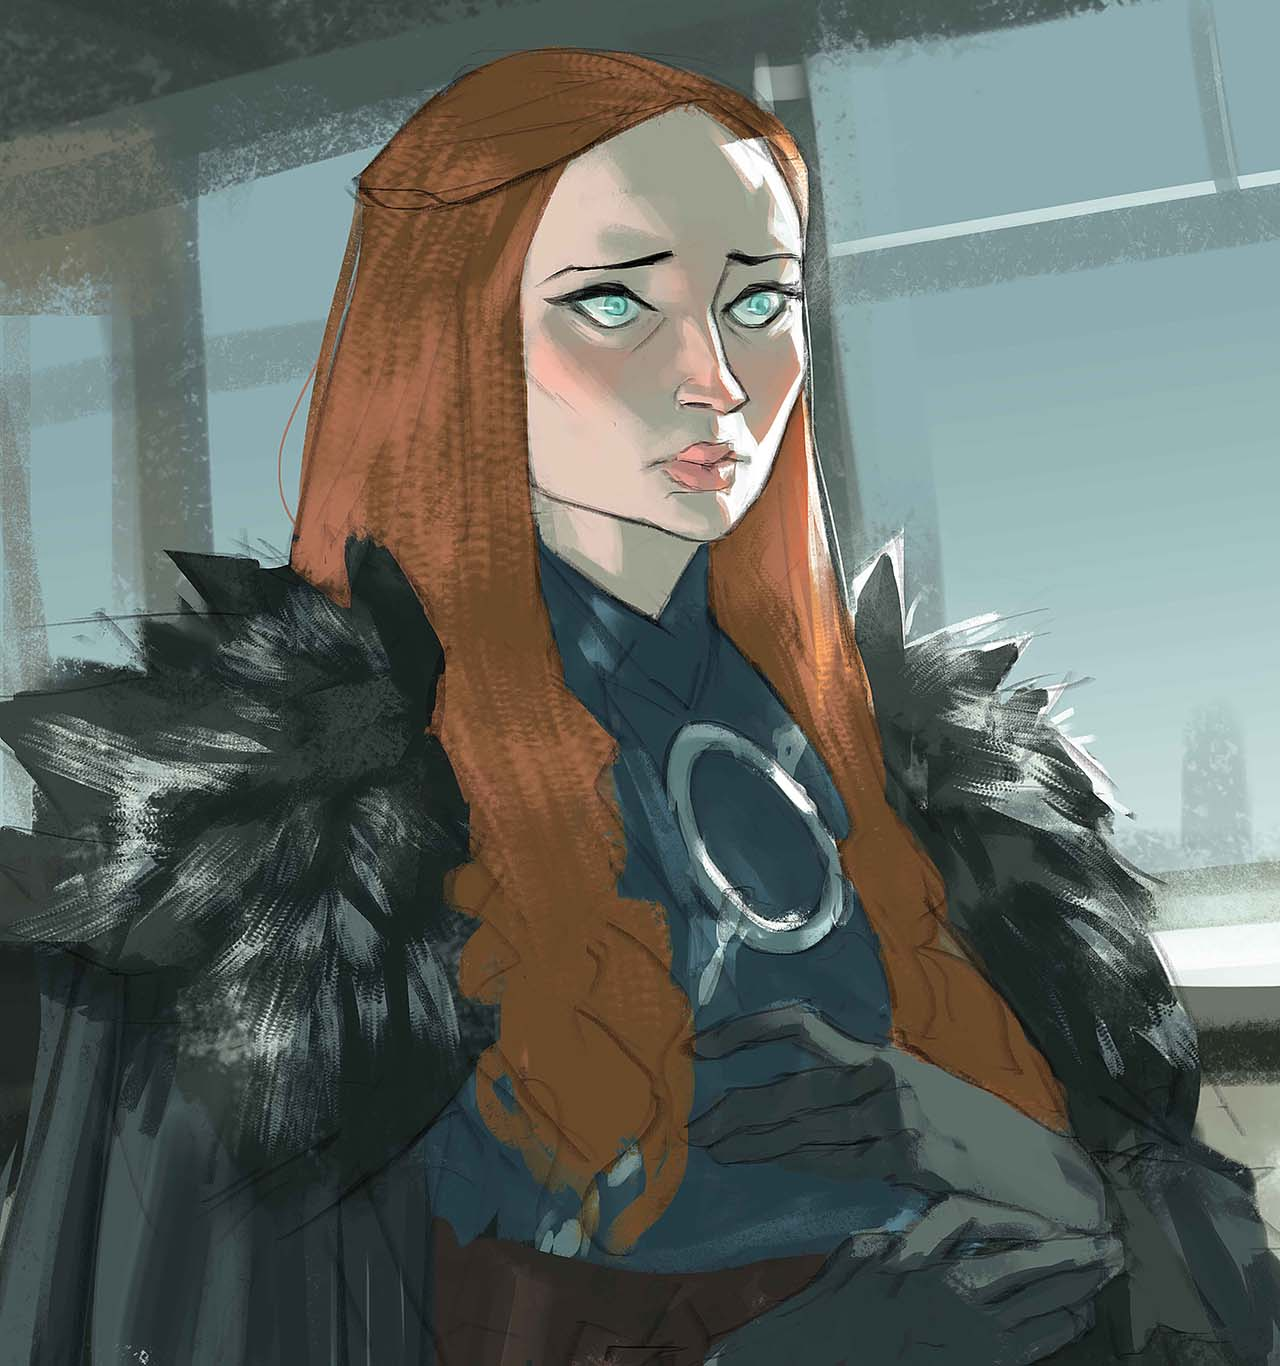 Artist Creates Unique Character Arts From Game Of Thrones – Sansa Stark Character Art By Ramón Nuñez